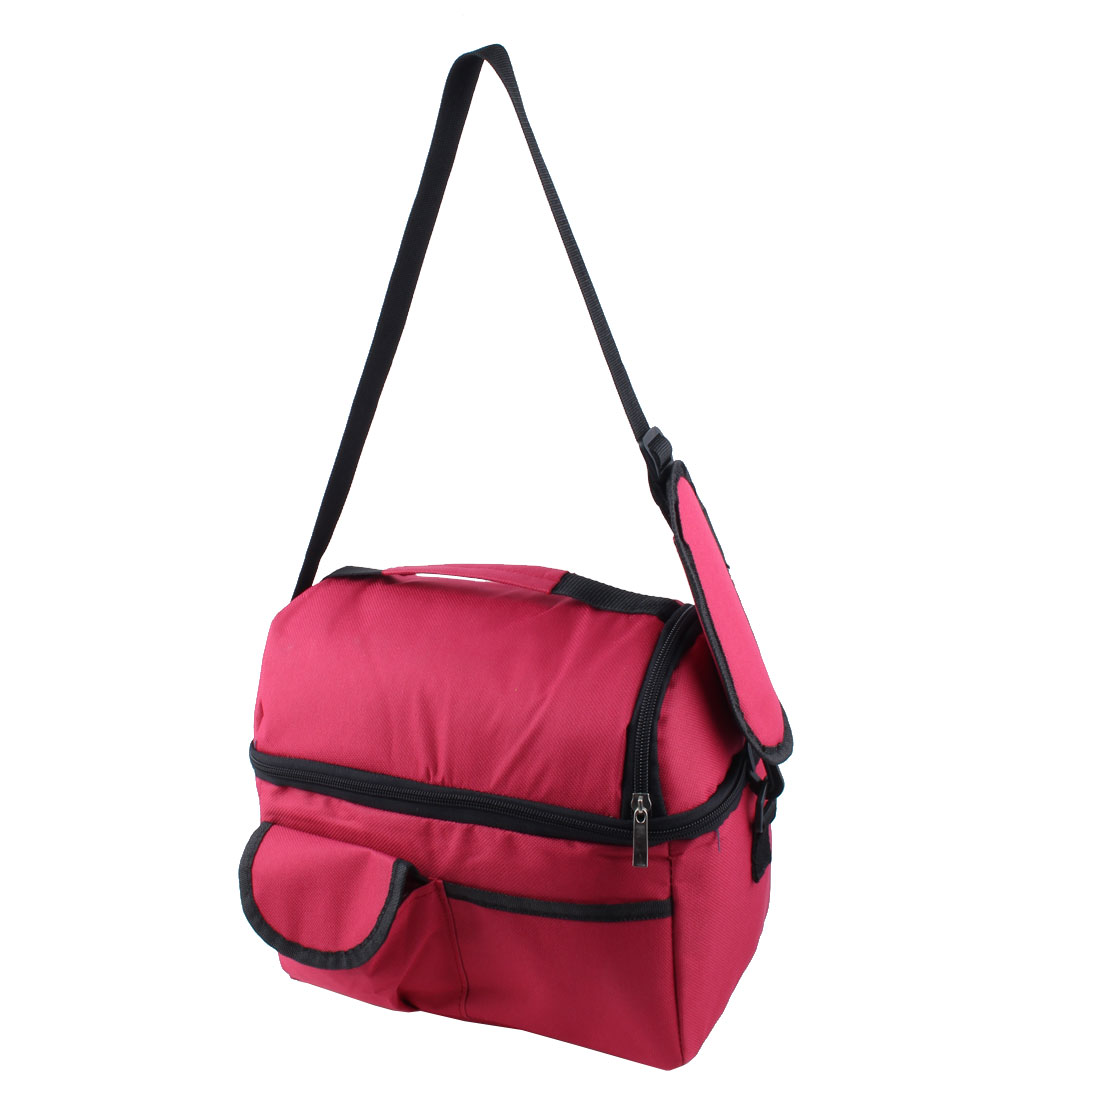 Outdoor Portable Double Layer Insulated Lunch Cooler Bag Picnic Container Tote Burgundy